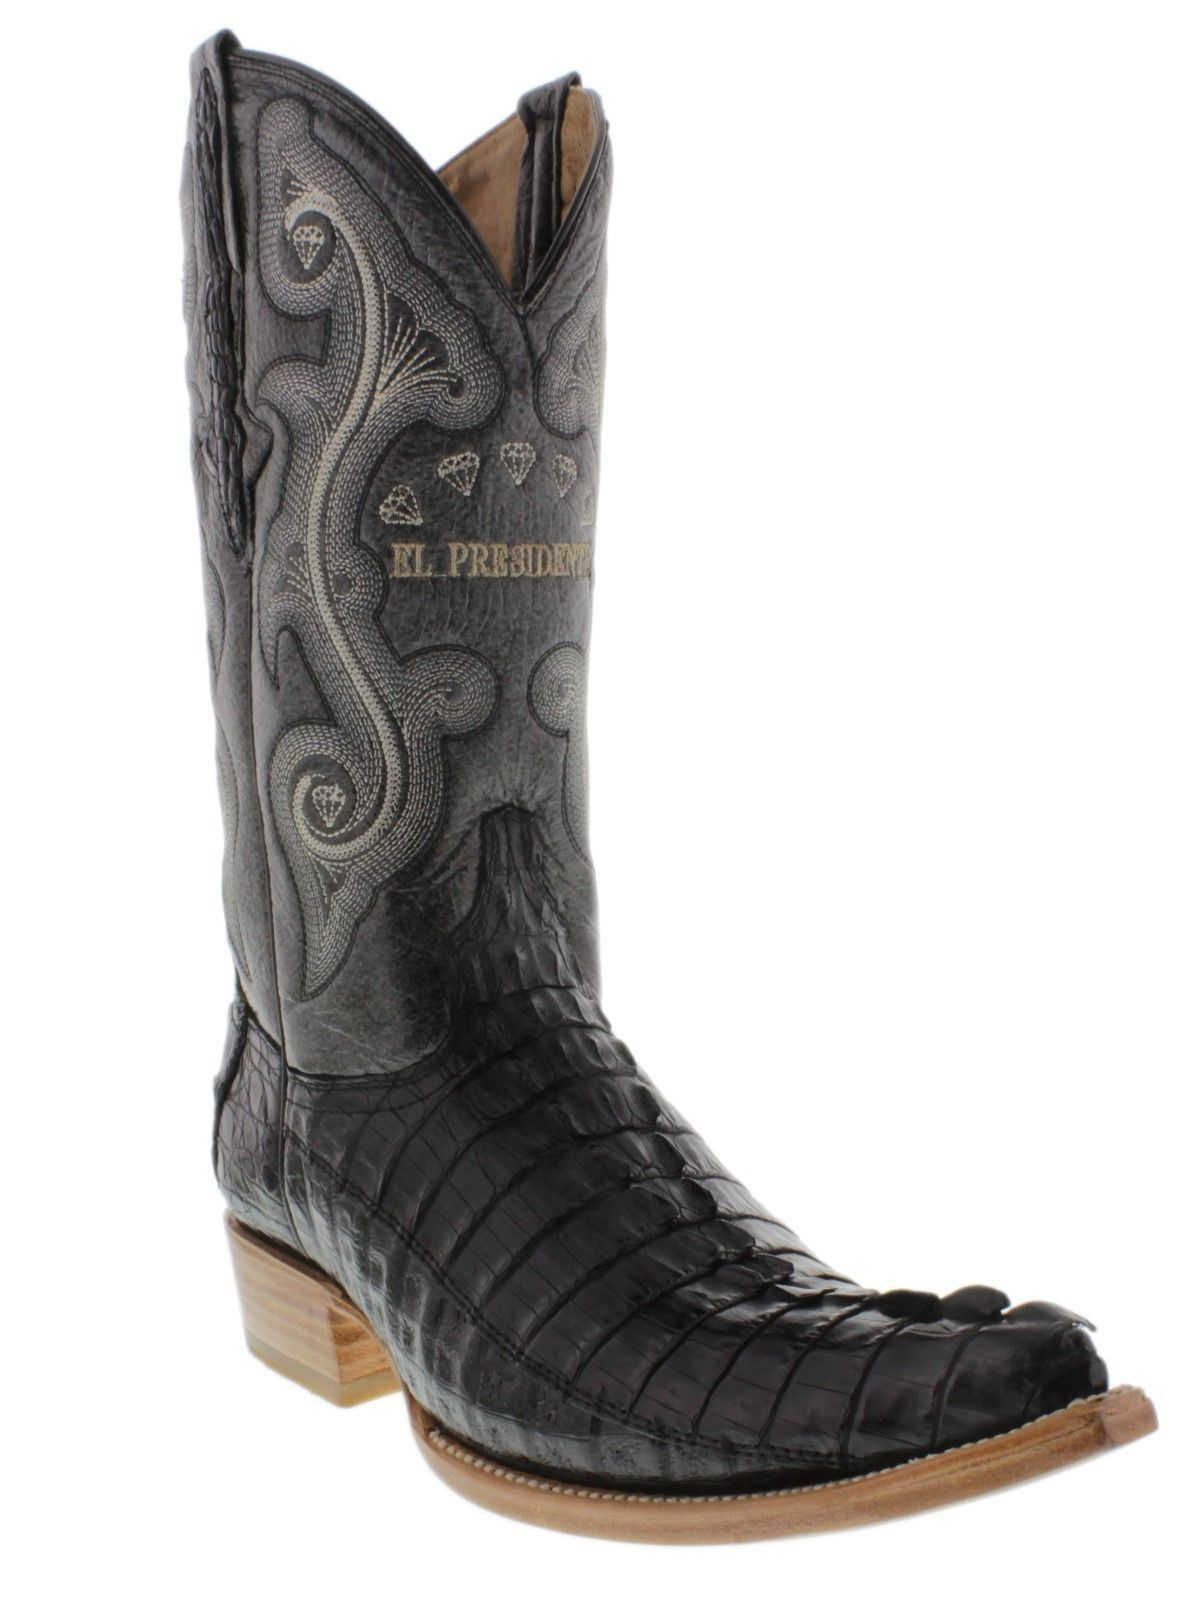 Primary image for Mens Genuine Black Alligator Crocodile Leather Western Cowboy Boots 3x Toe